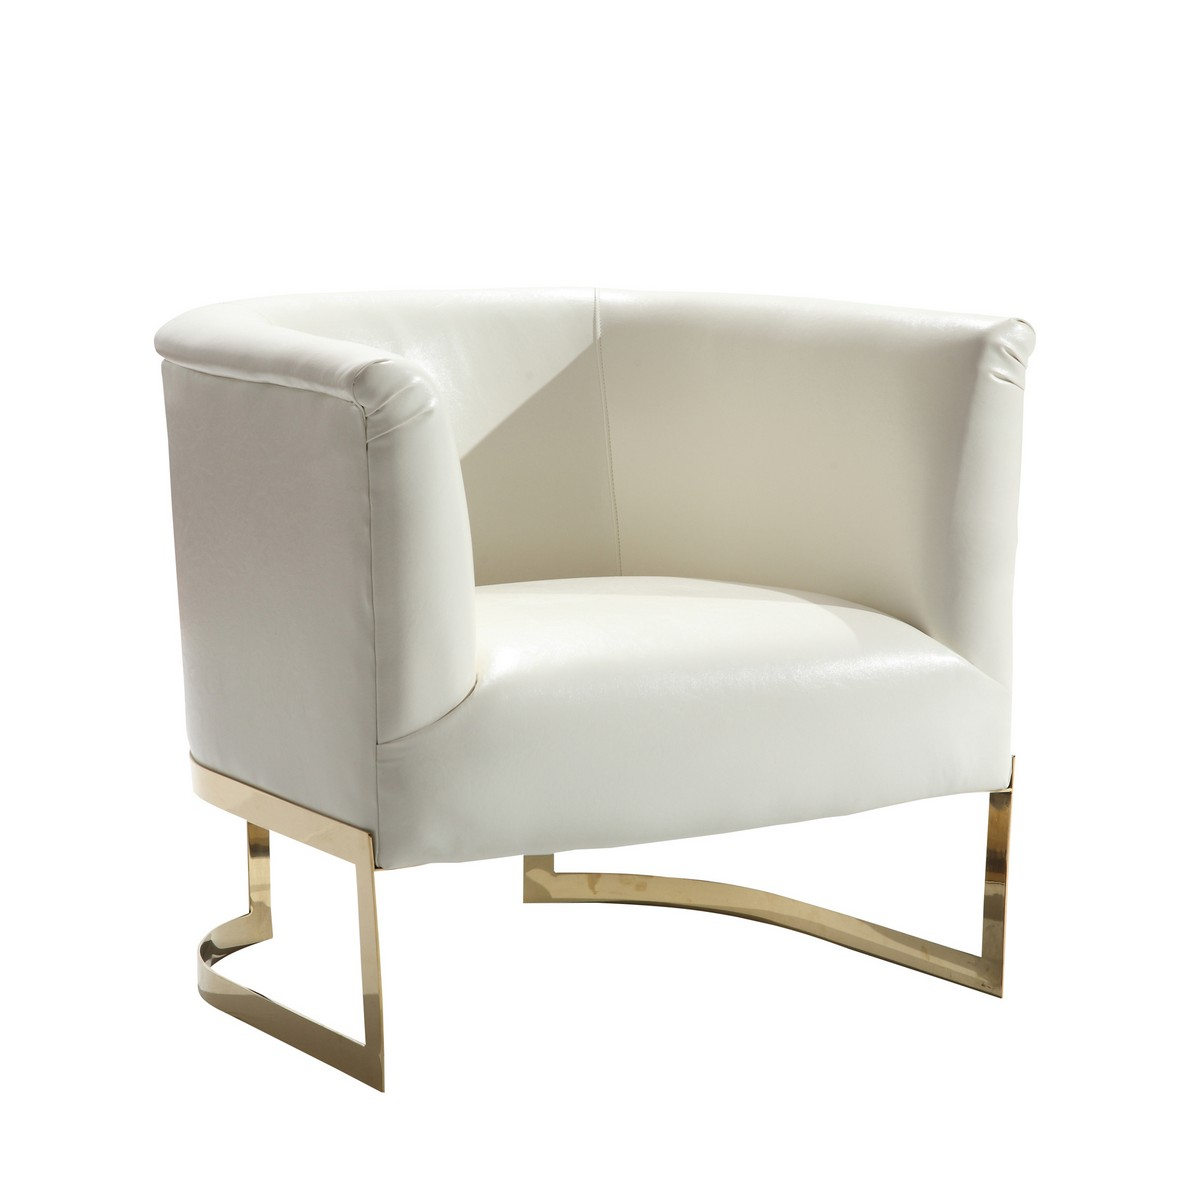 contemporary accent chair margaritaville adirondack chairs armen living elite in white and